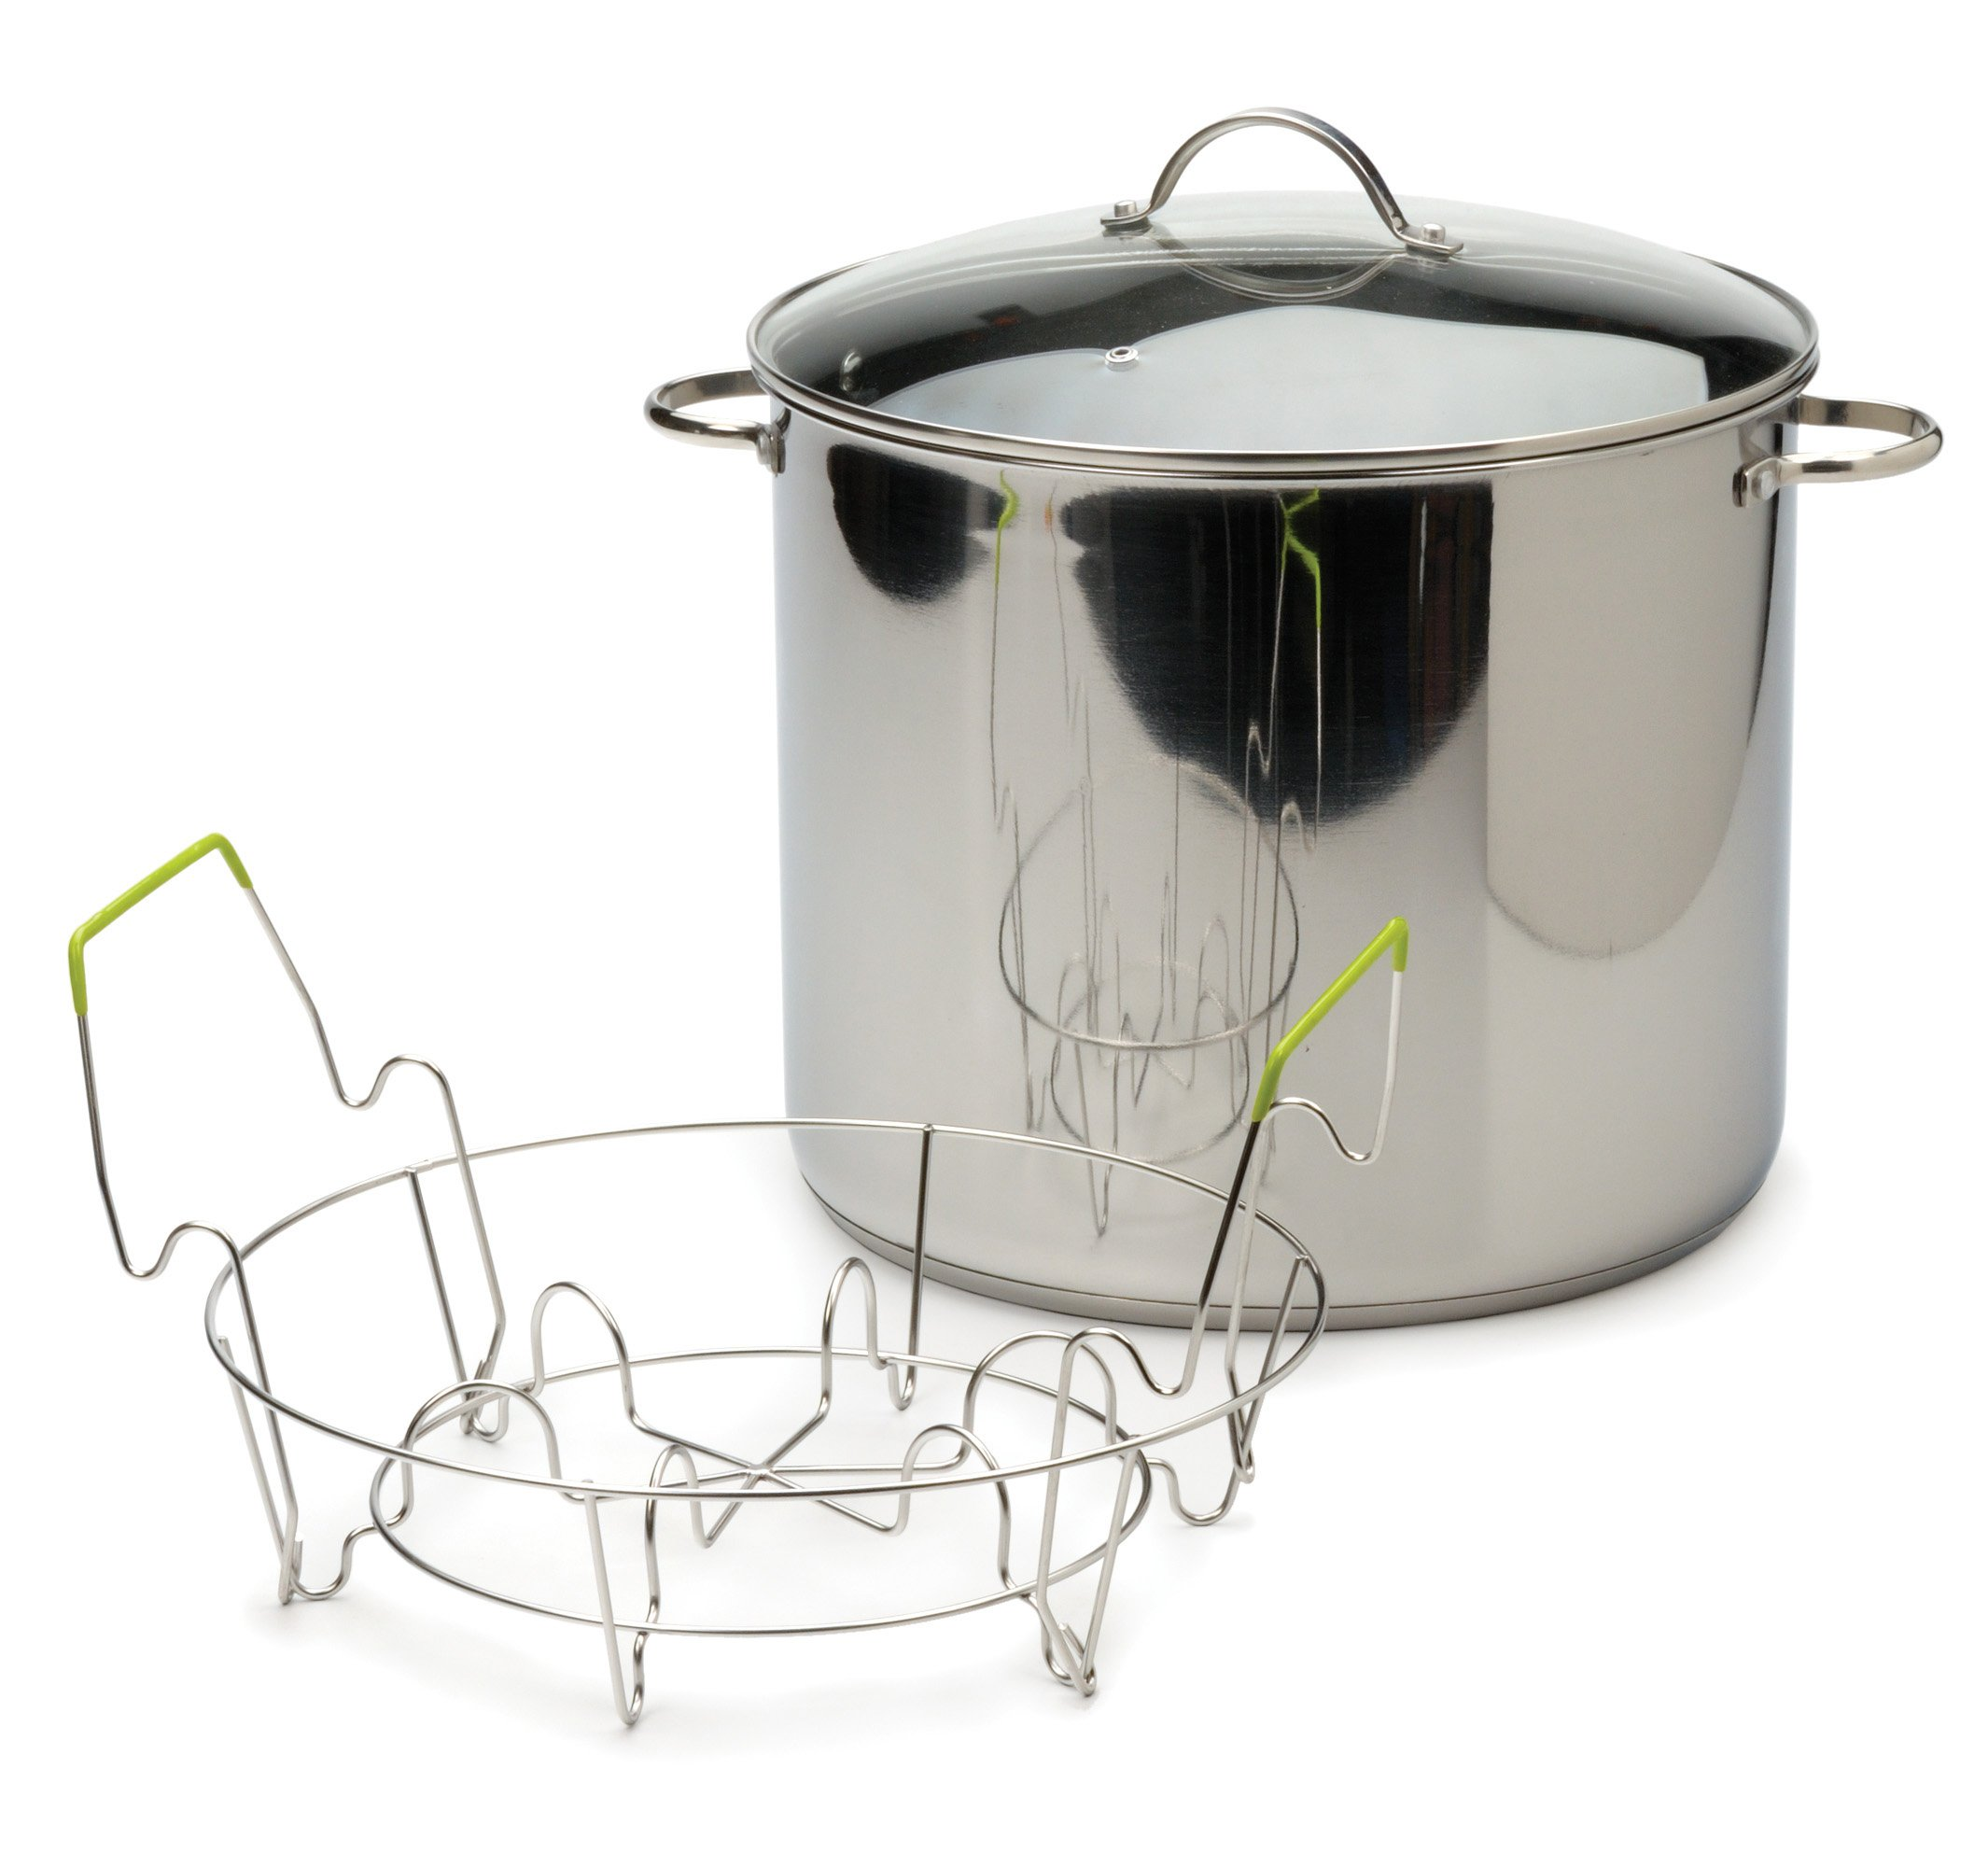 RSVP Endurance Stainless Steel 20 Quart Water Bath Canner